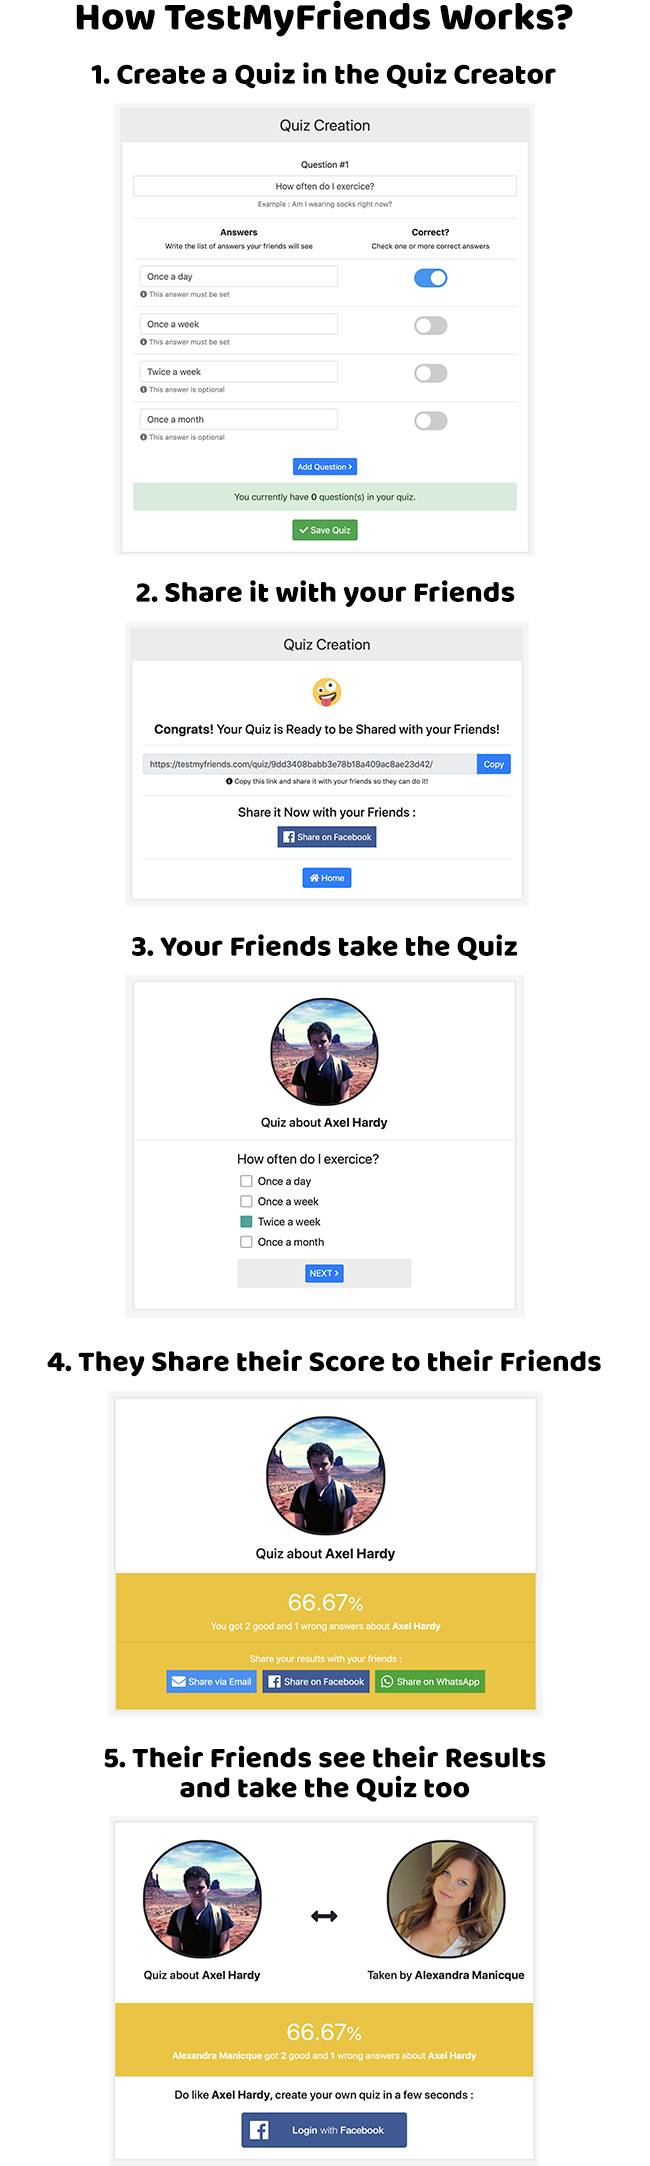 TestMyFriends - Complete Viral Friend Quiz Website - 1